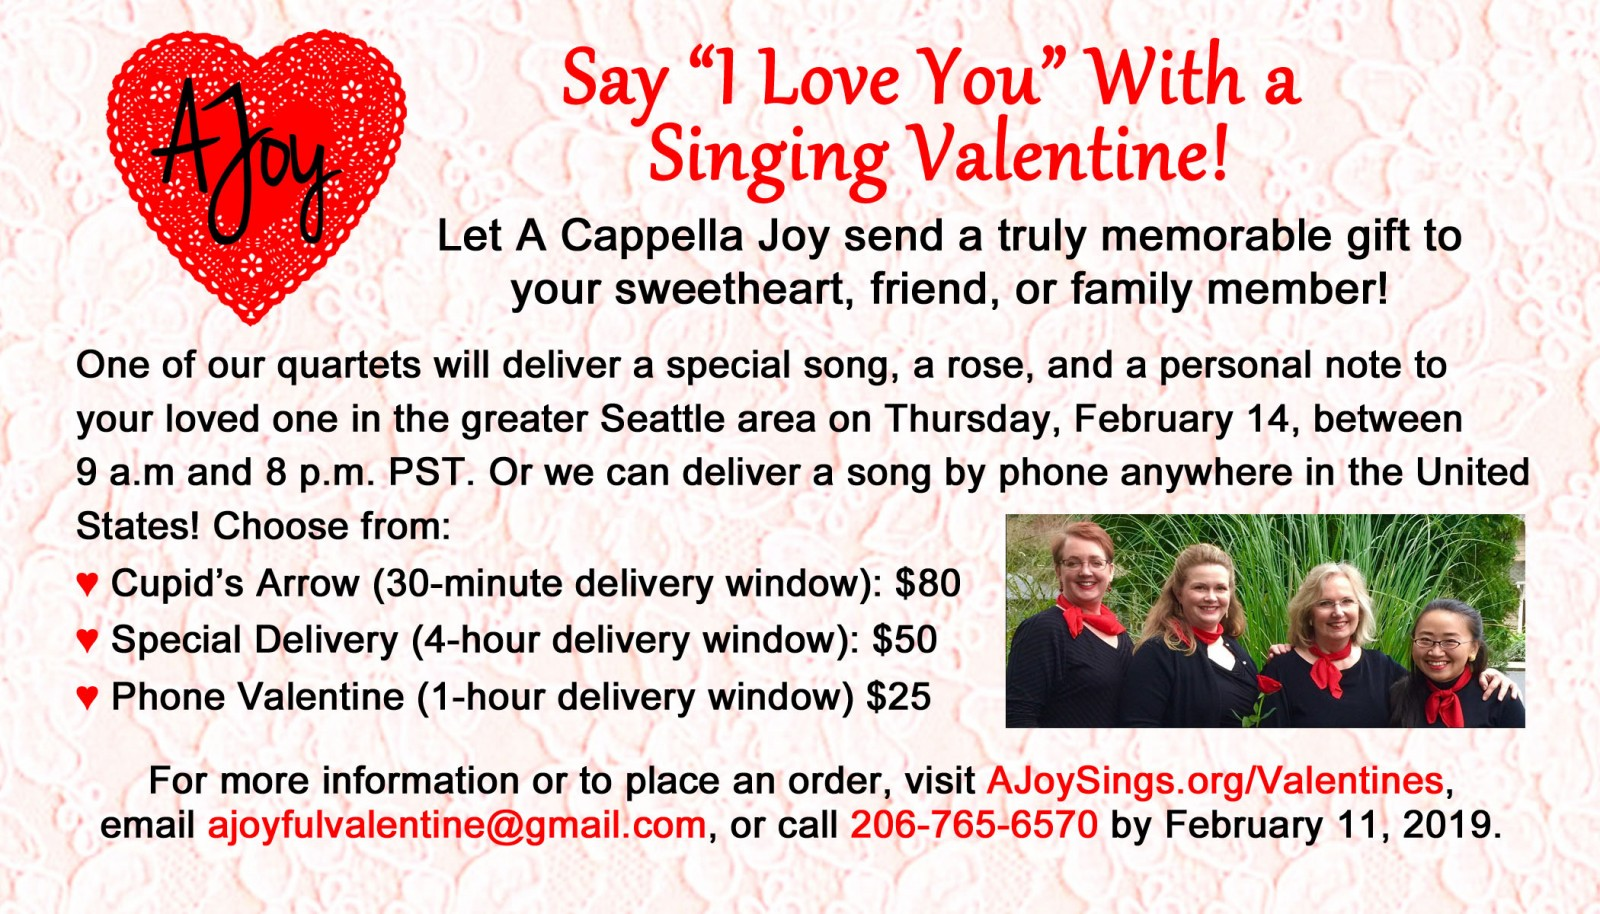 A Cappella Joy Singing Valentines 2019